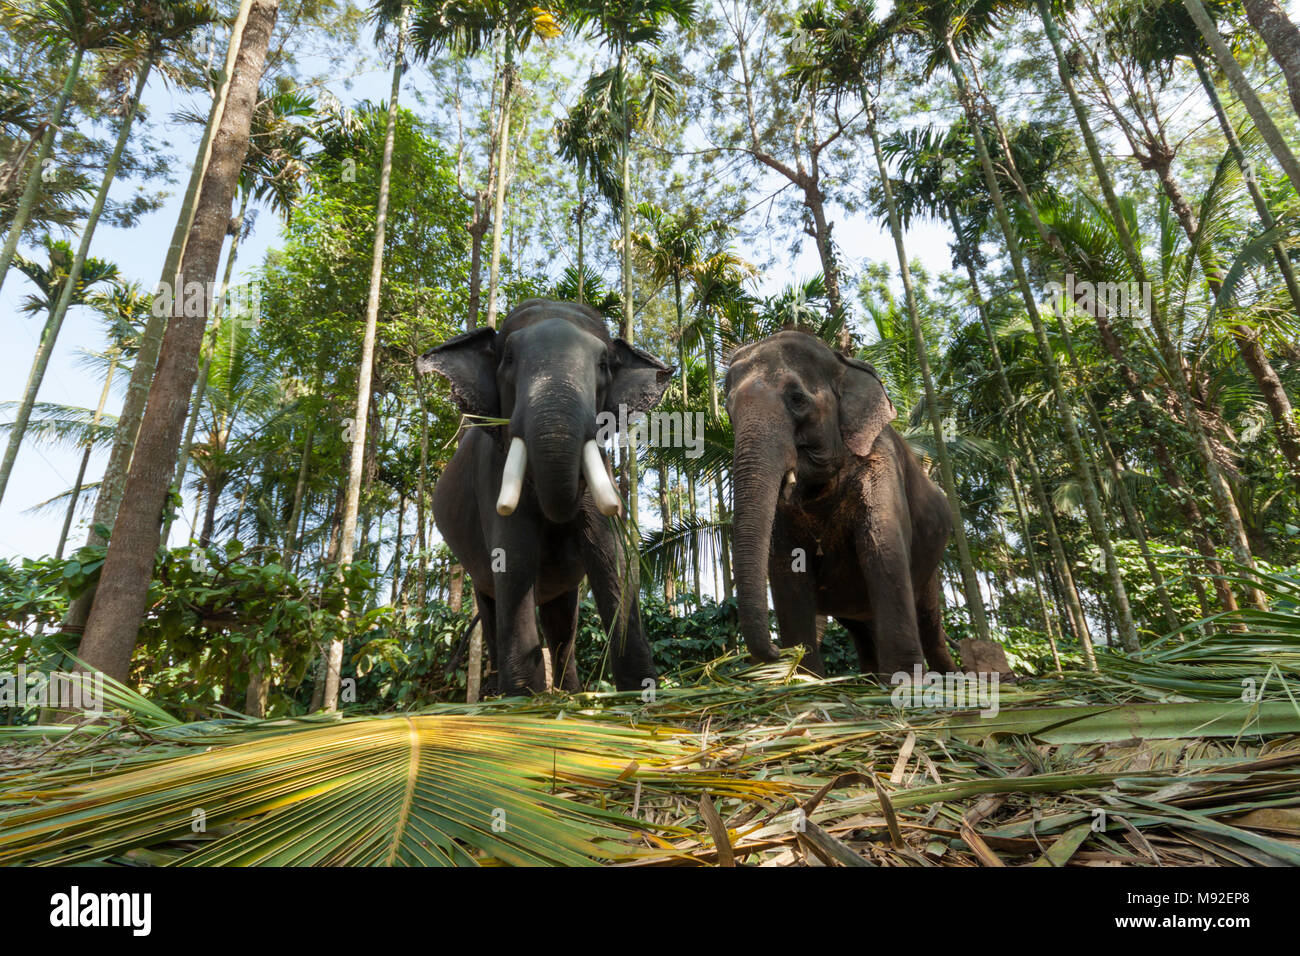 Two elephants at Thekkady, Periyar, Kerala, India used to take tourists on rides. - Stock Image